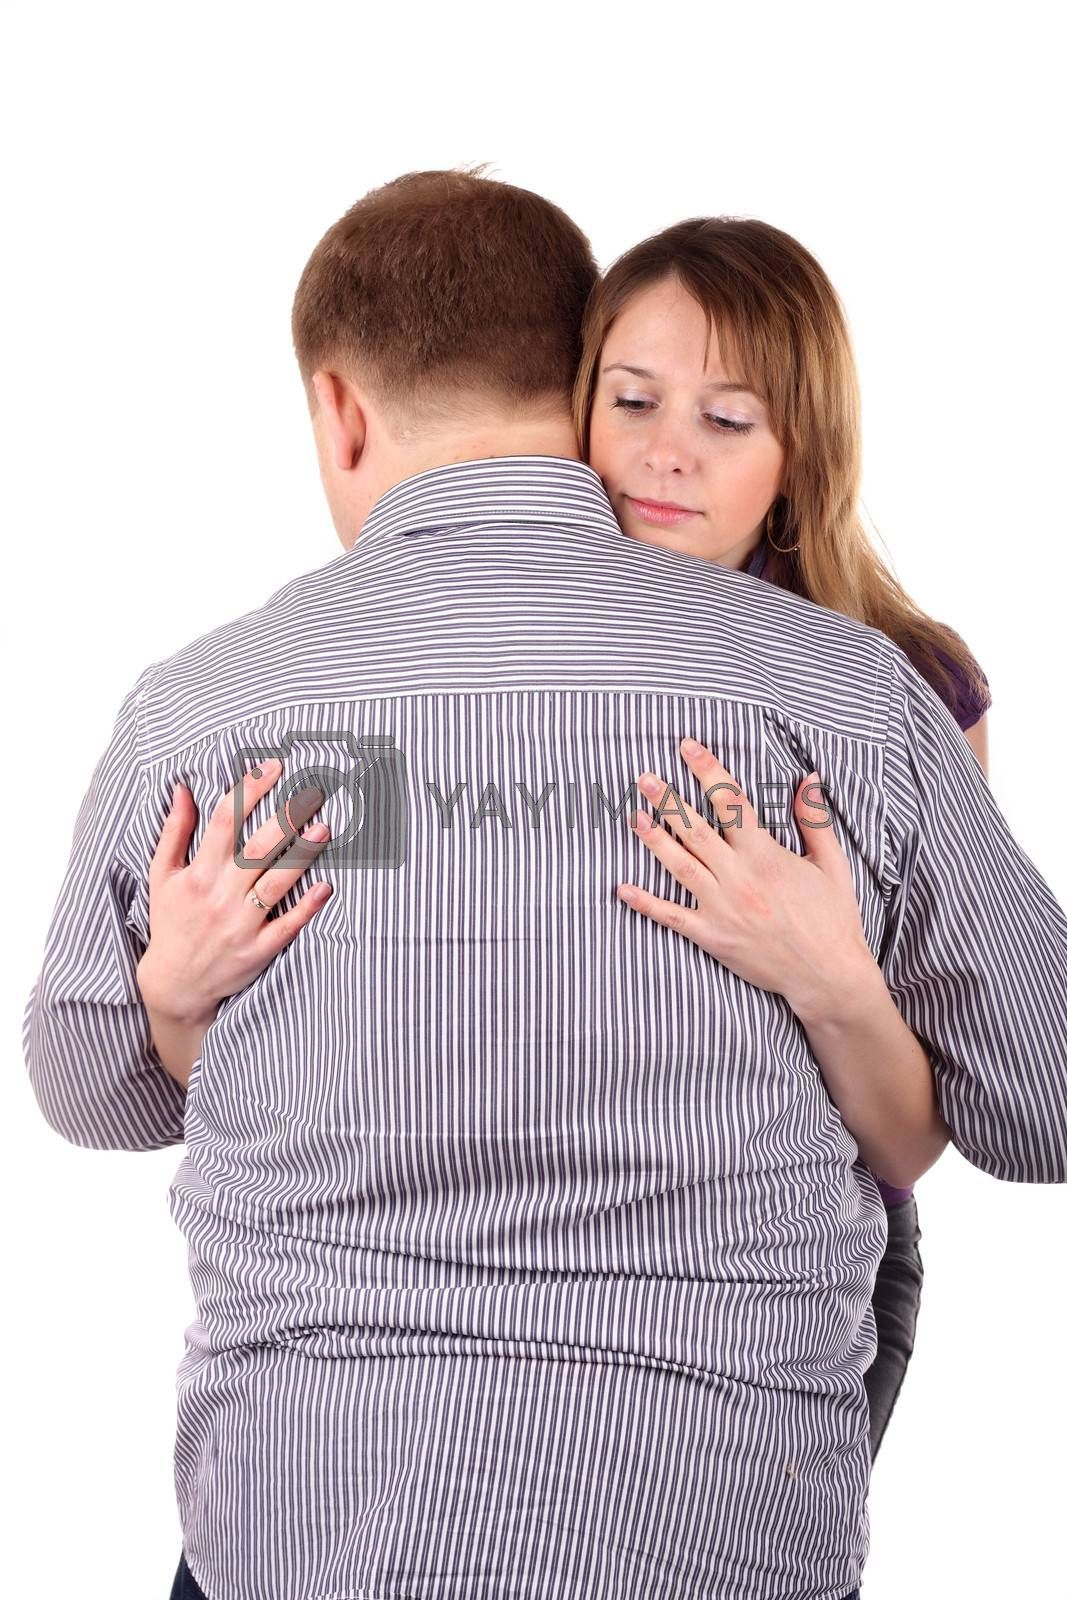 Girl embraces man isolated on the white background